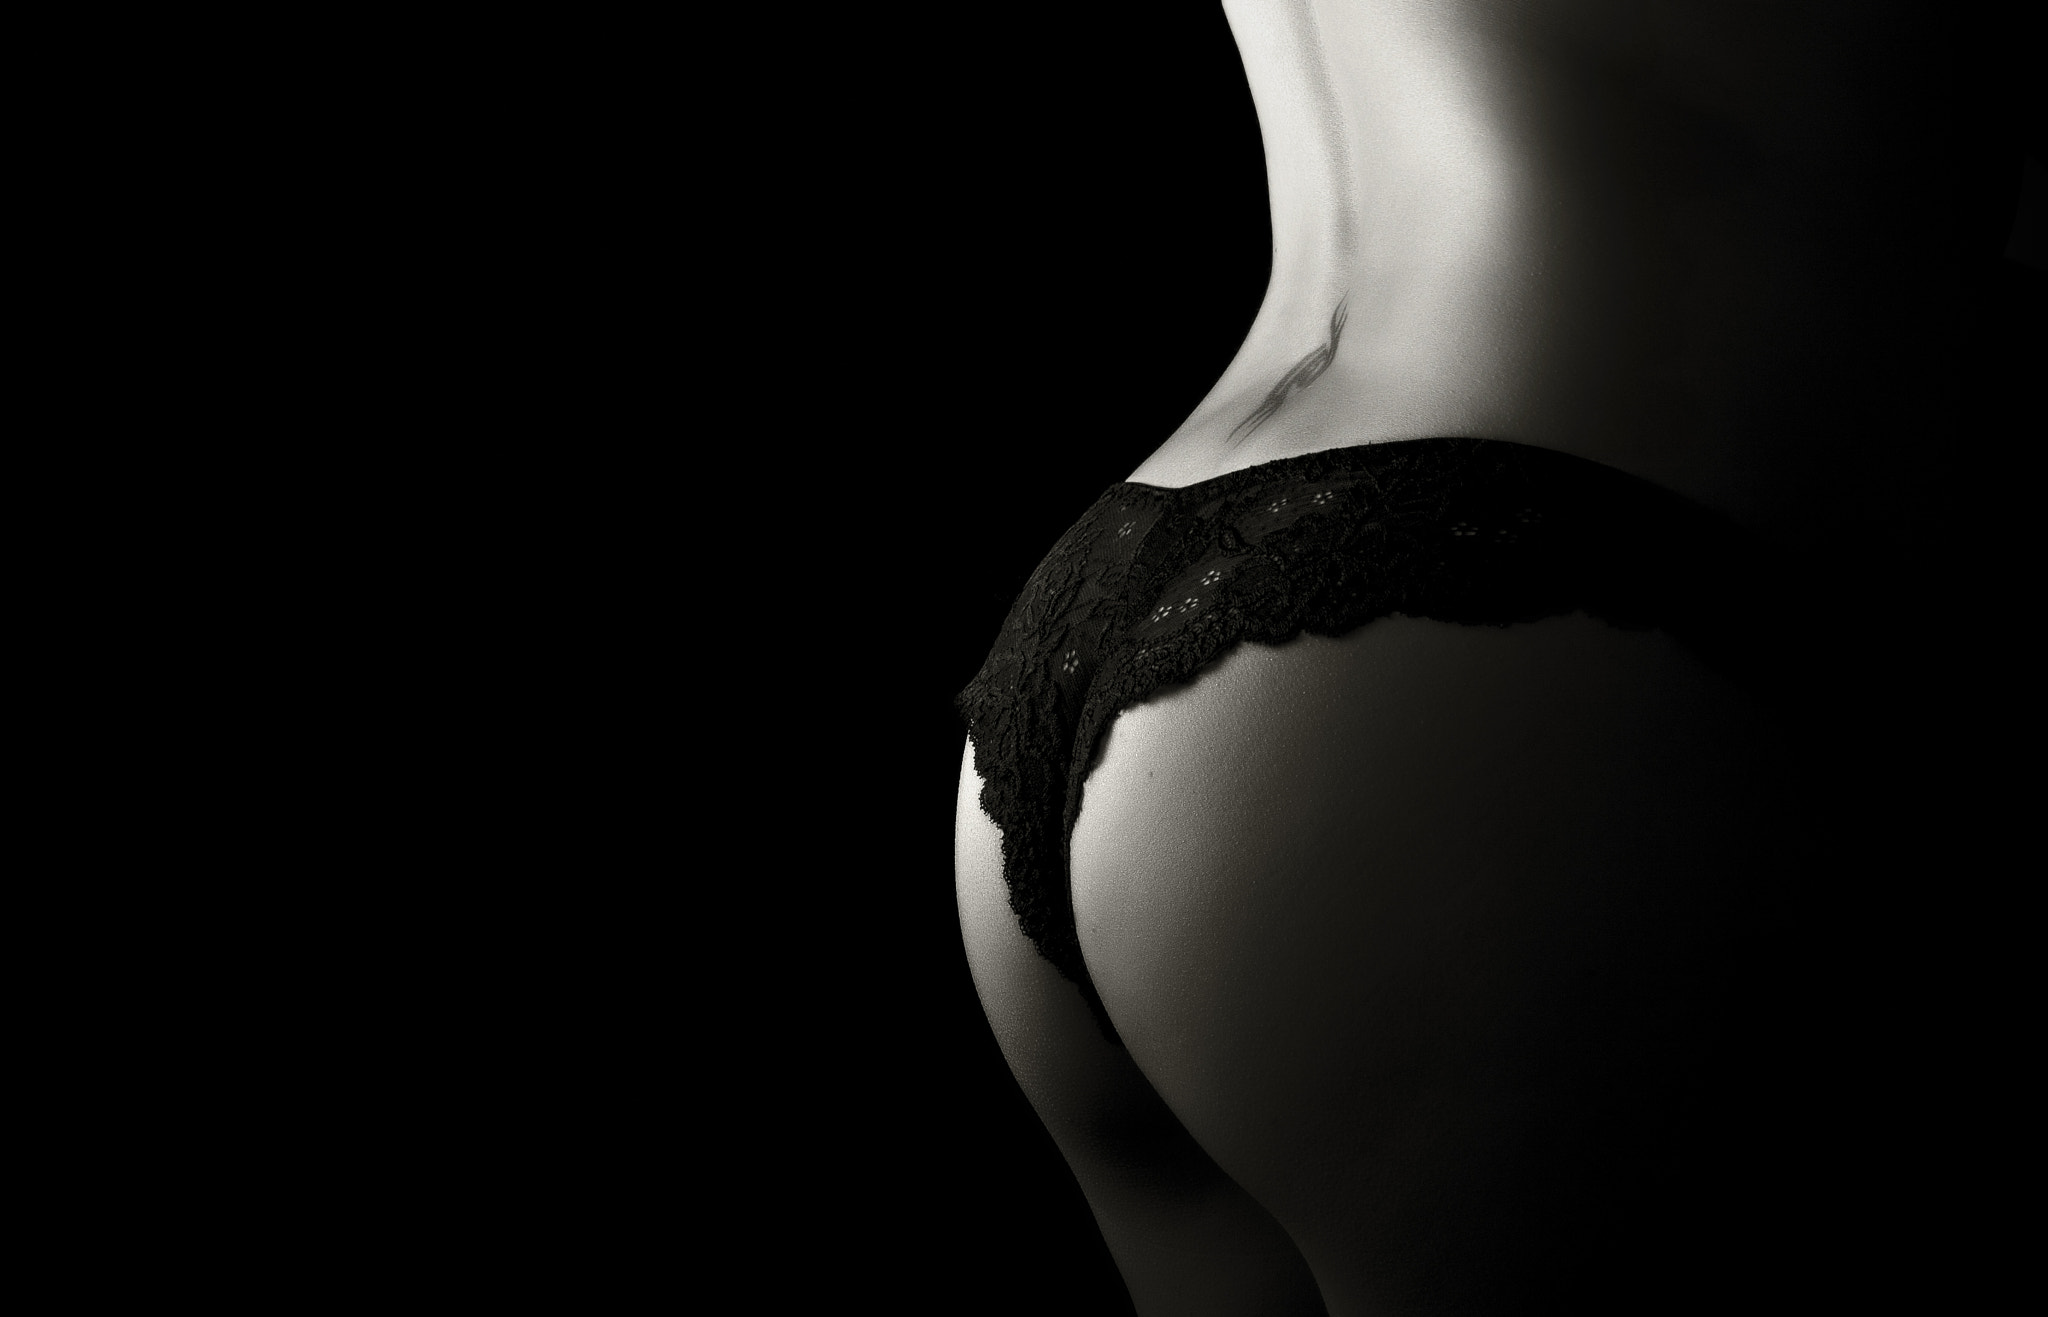 Photograph Black Lace by Stephen Haley on 500px